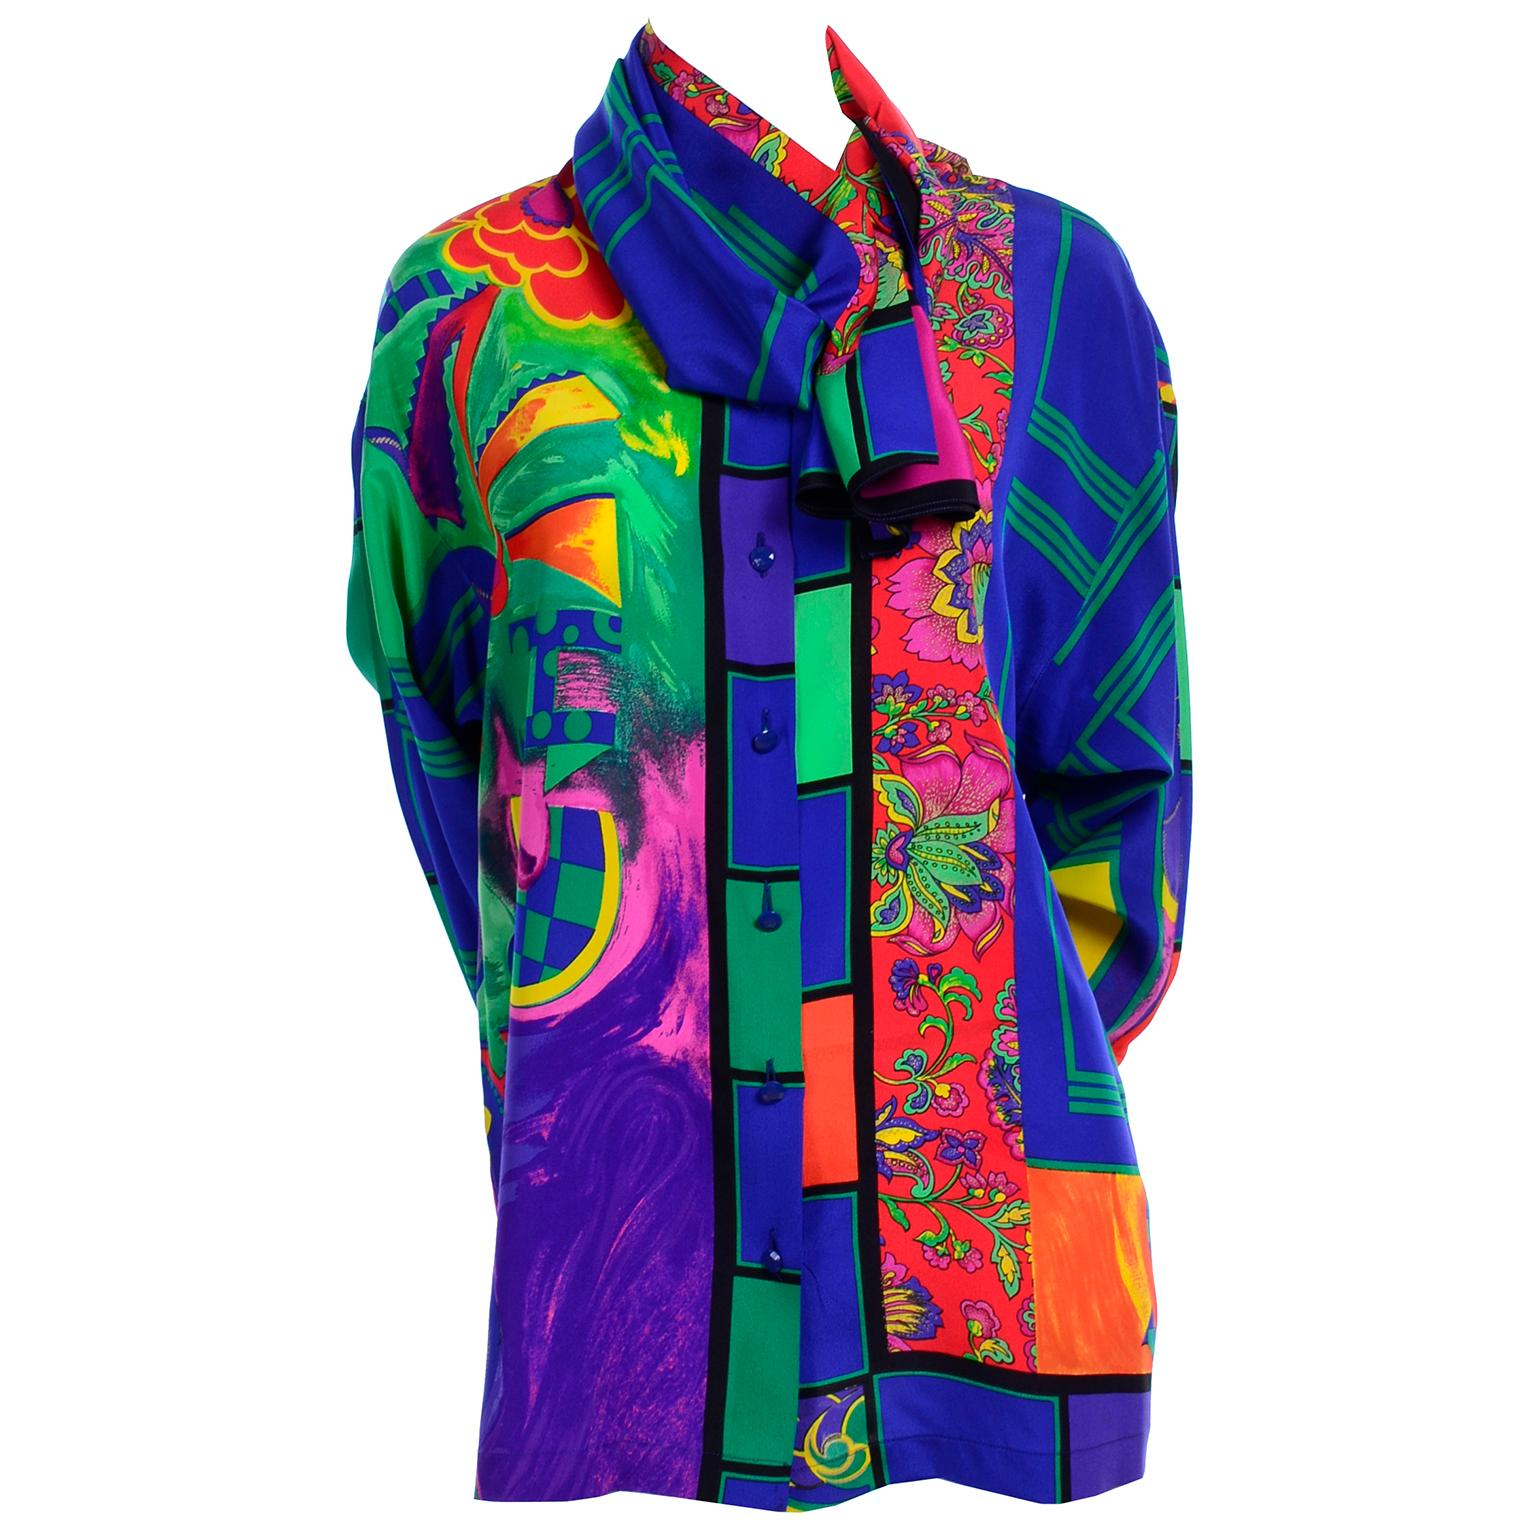 Early Gianni Versace Vintage Abstract Mixed Pattern Silk Print Blouse & Scarf